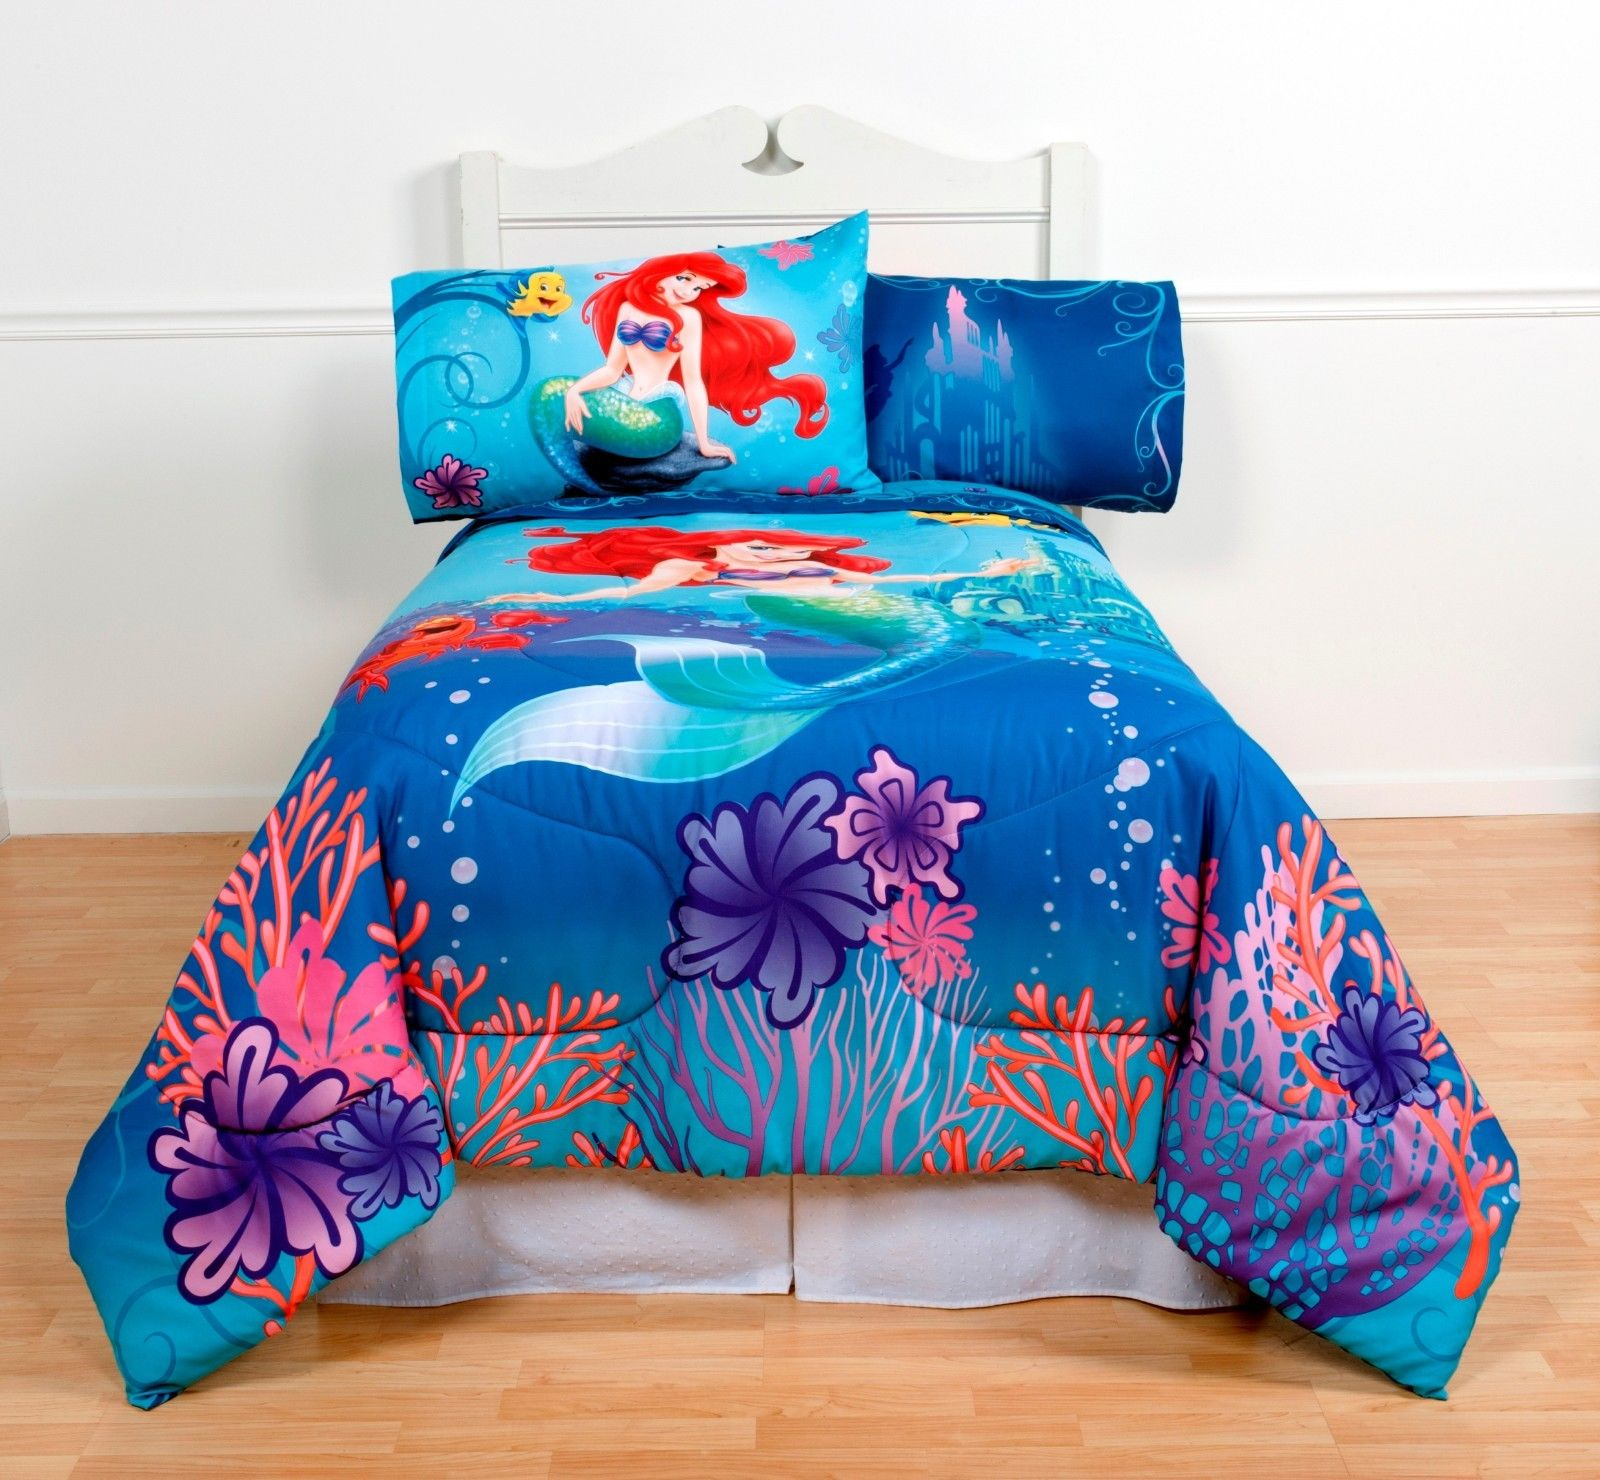 The Little Mermaid Full Comforter U0026 Sheet Set (5 Piece Bed In A ...